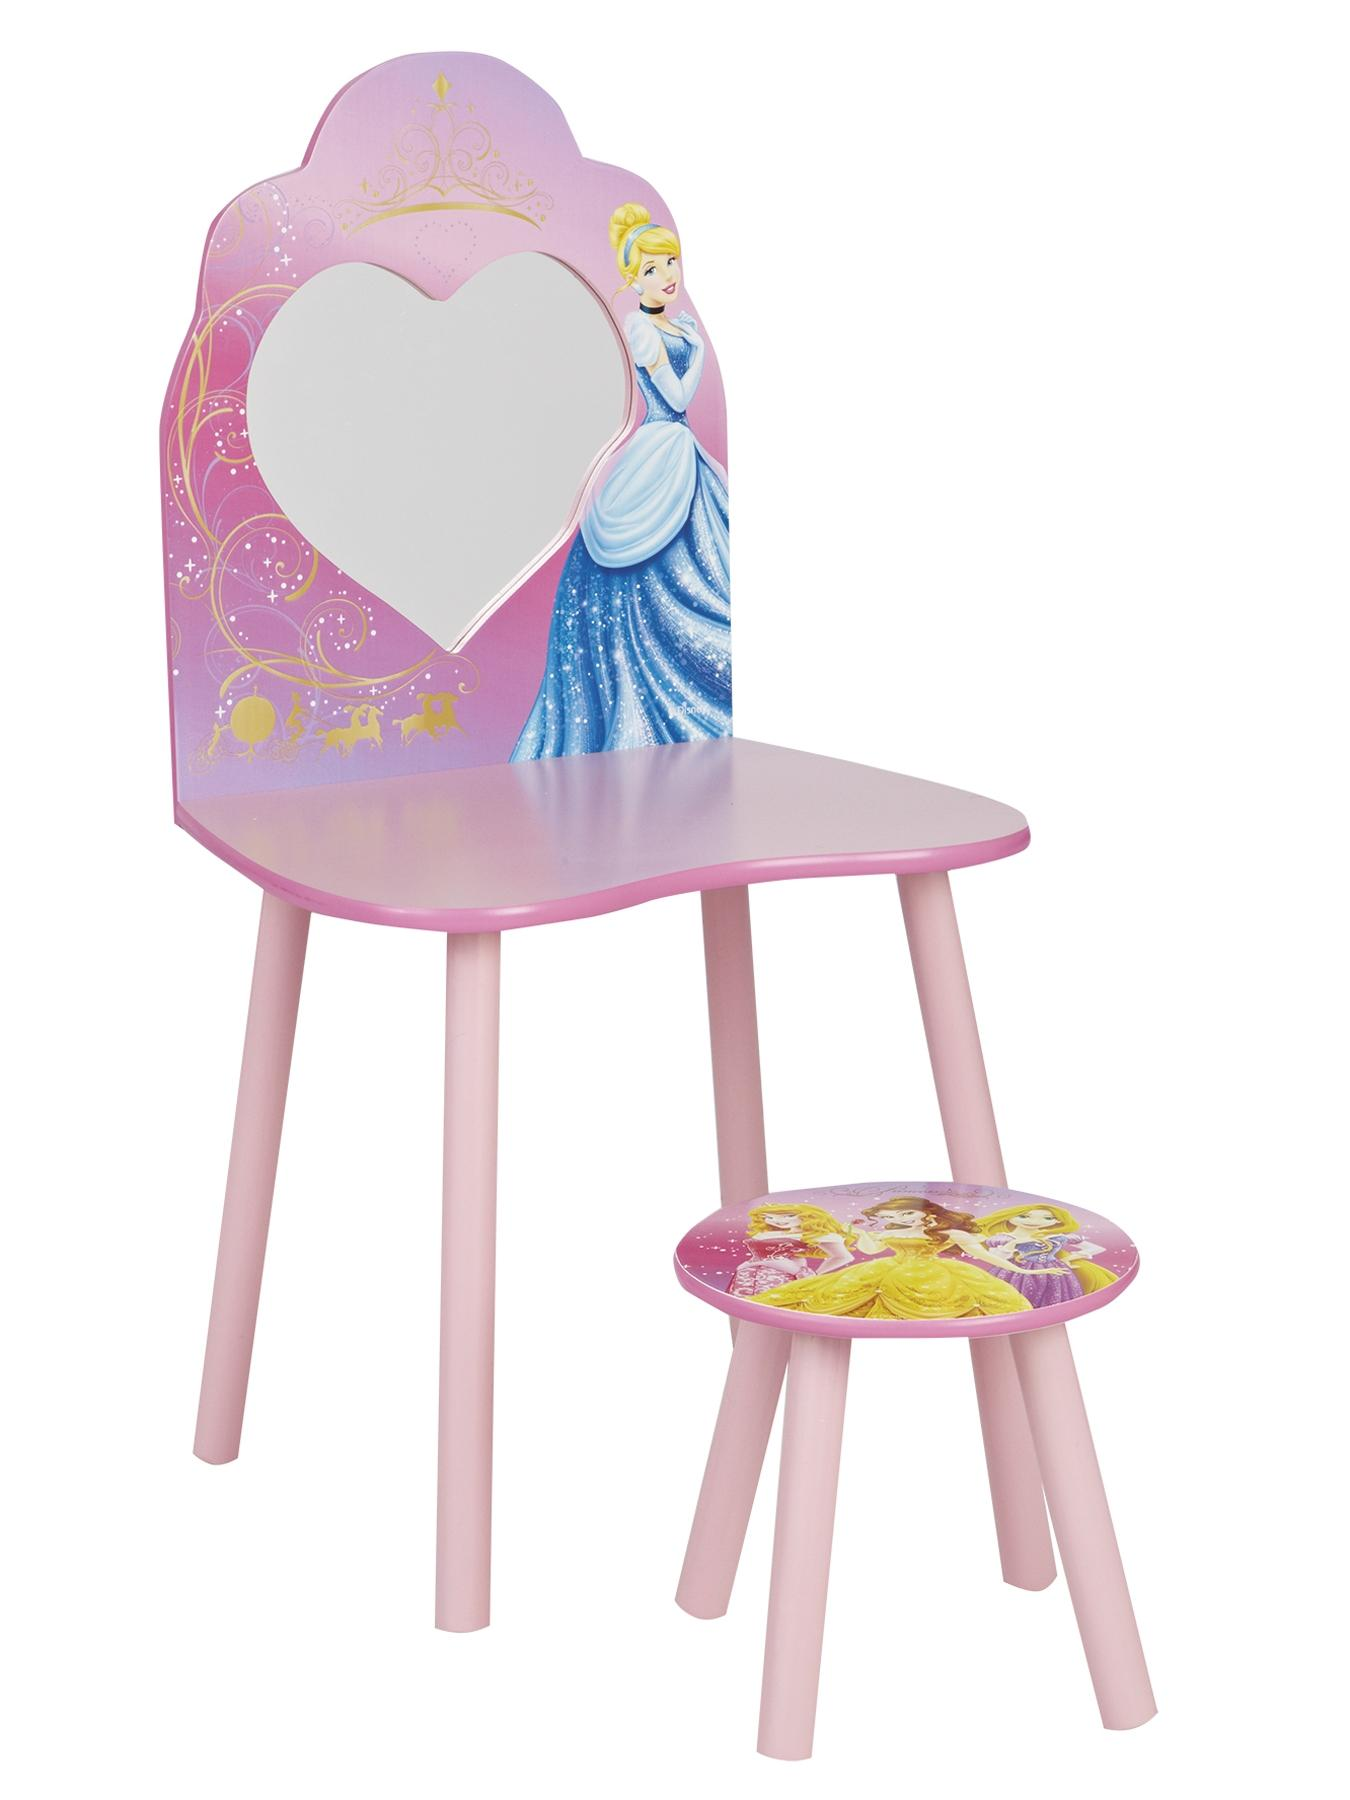 Disney Vanity Dressing Table and Chair - Pink, Pink